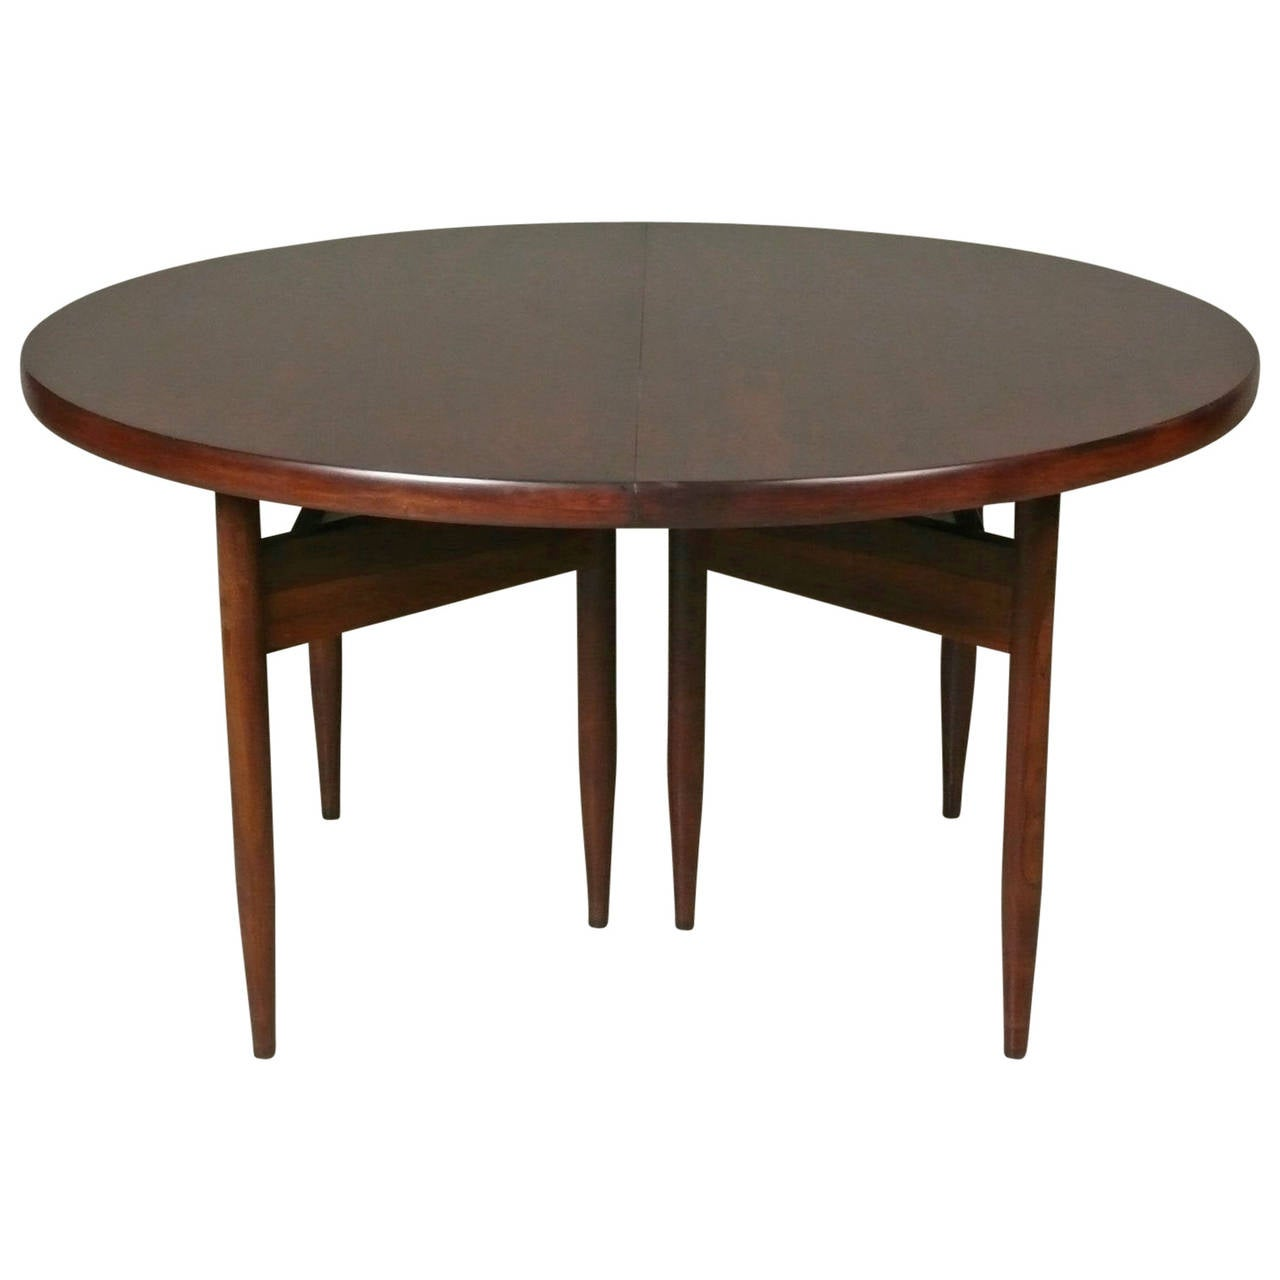 danish rosewood dining table with two leaves at 1stdibs ForDining Table With Two Leaves